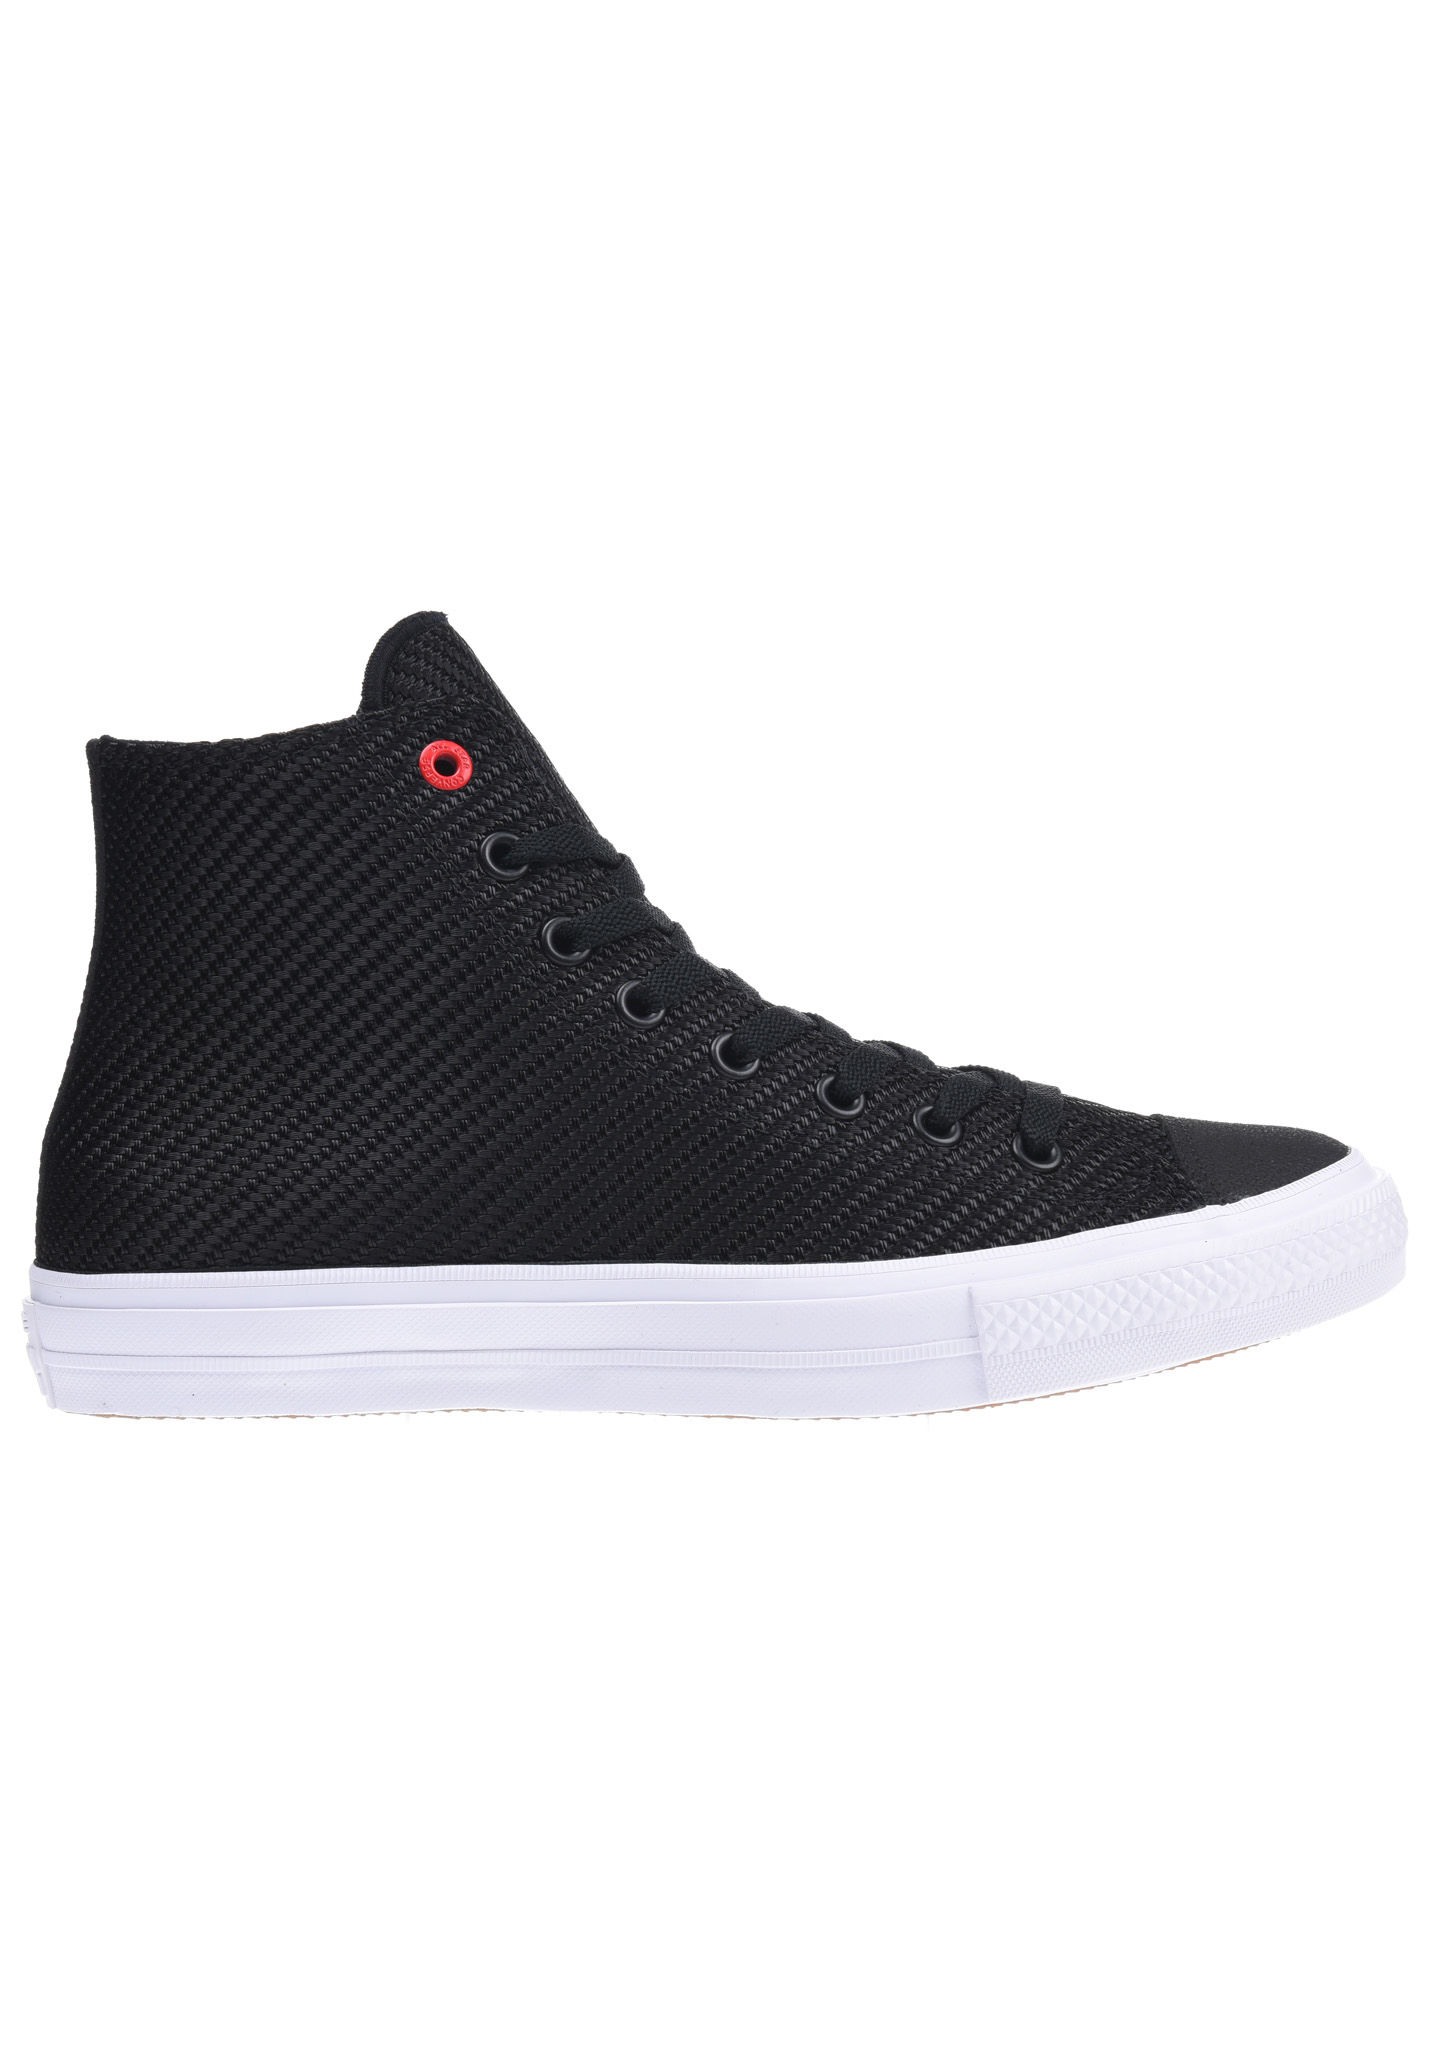 87a97787a Converse Chuck Taylor All Star II Hi - Sneakers for Men - Black - Planet  Sports